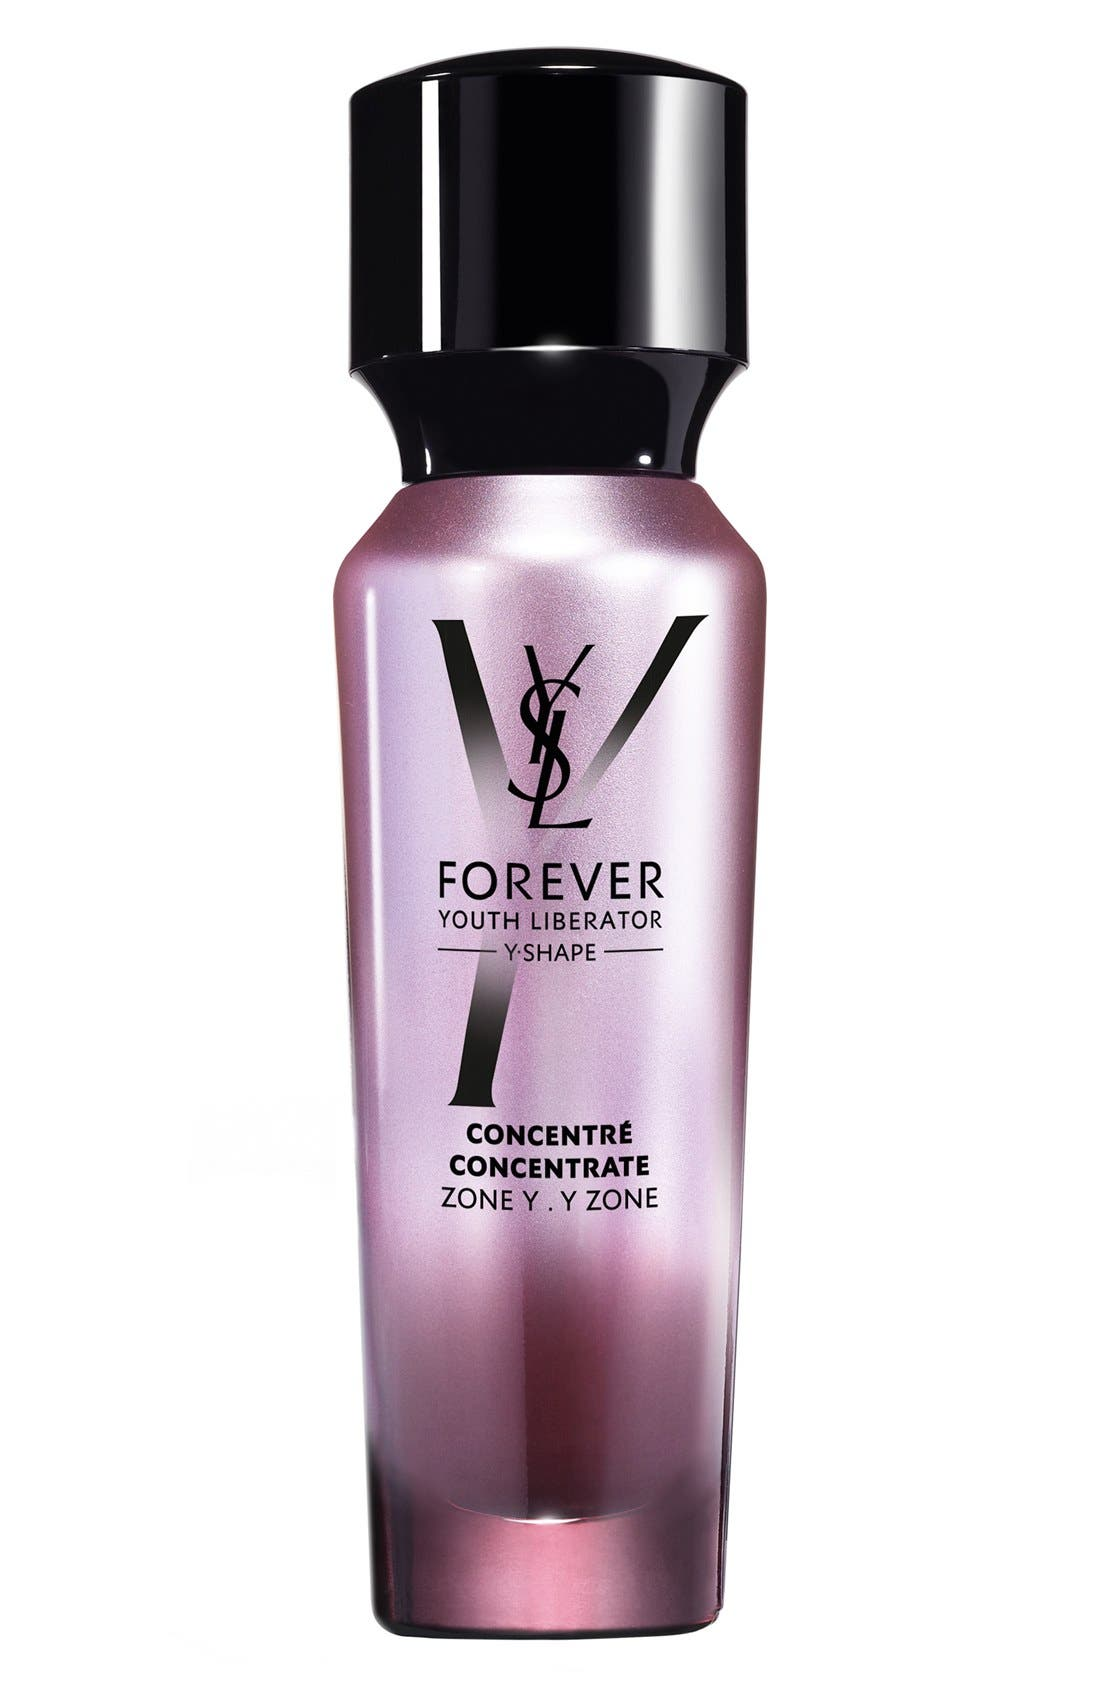 Yves Saint Laurent 'Forever Youth Liberator' Y-Shape Concentrate